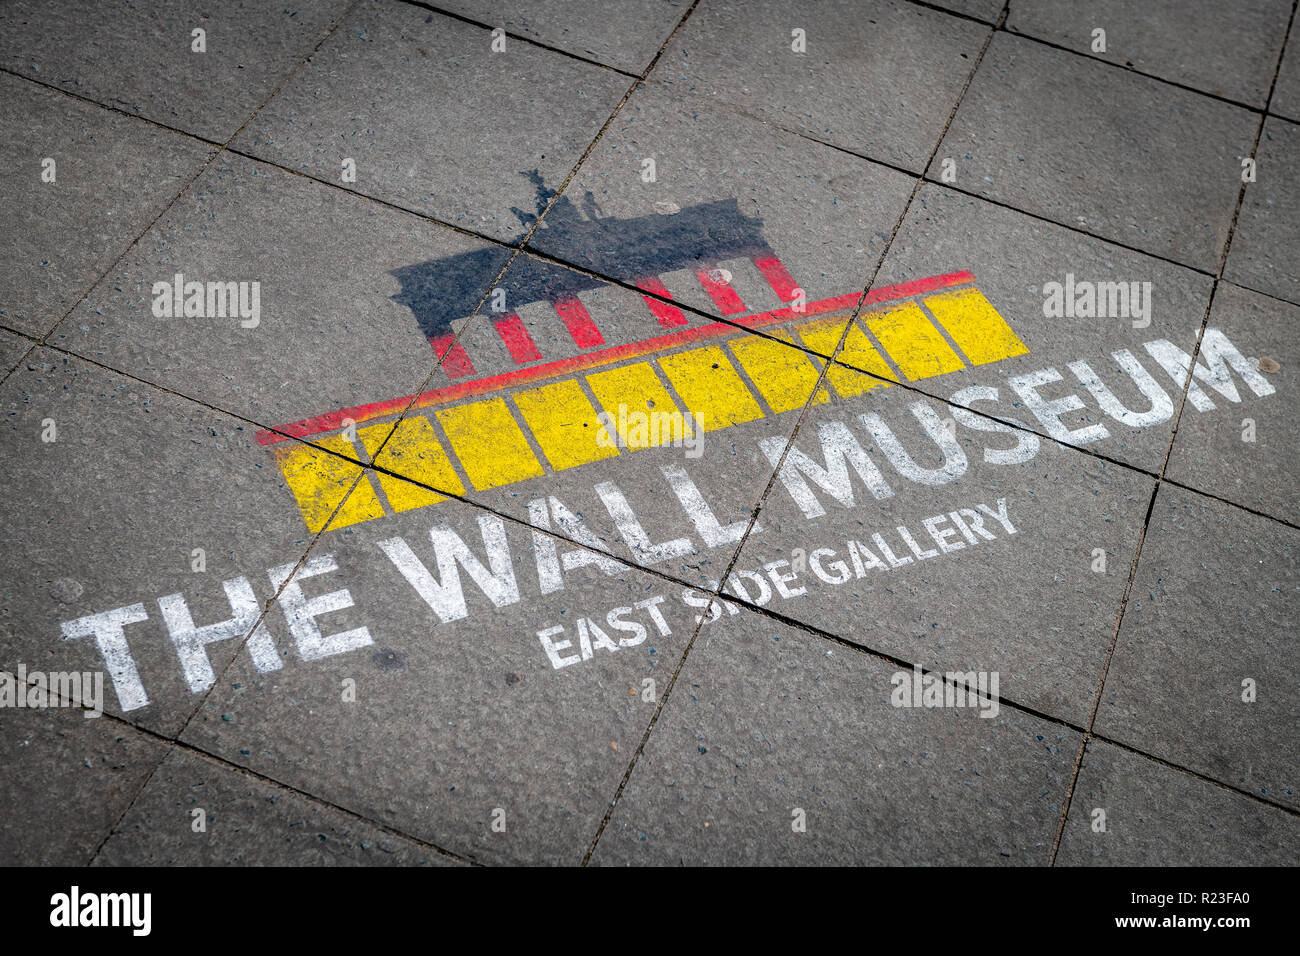 The Wall Museum - East Side Gallery, Berlin, Germany - Stock Image